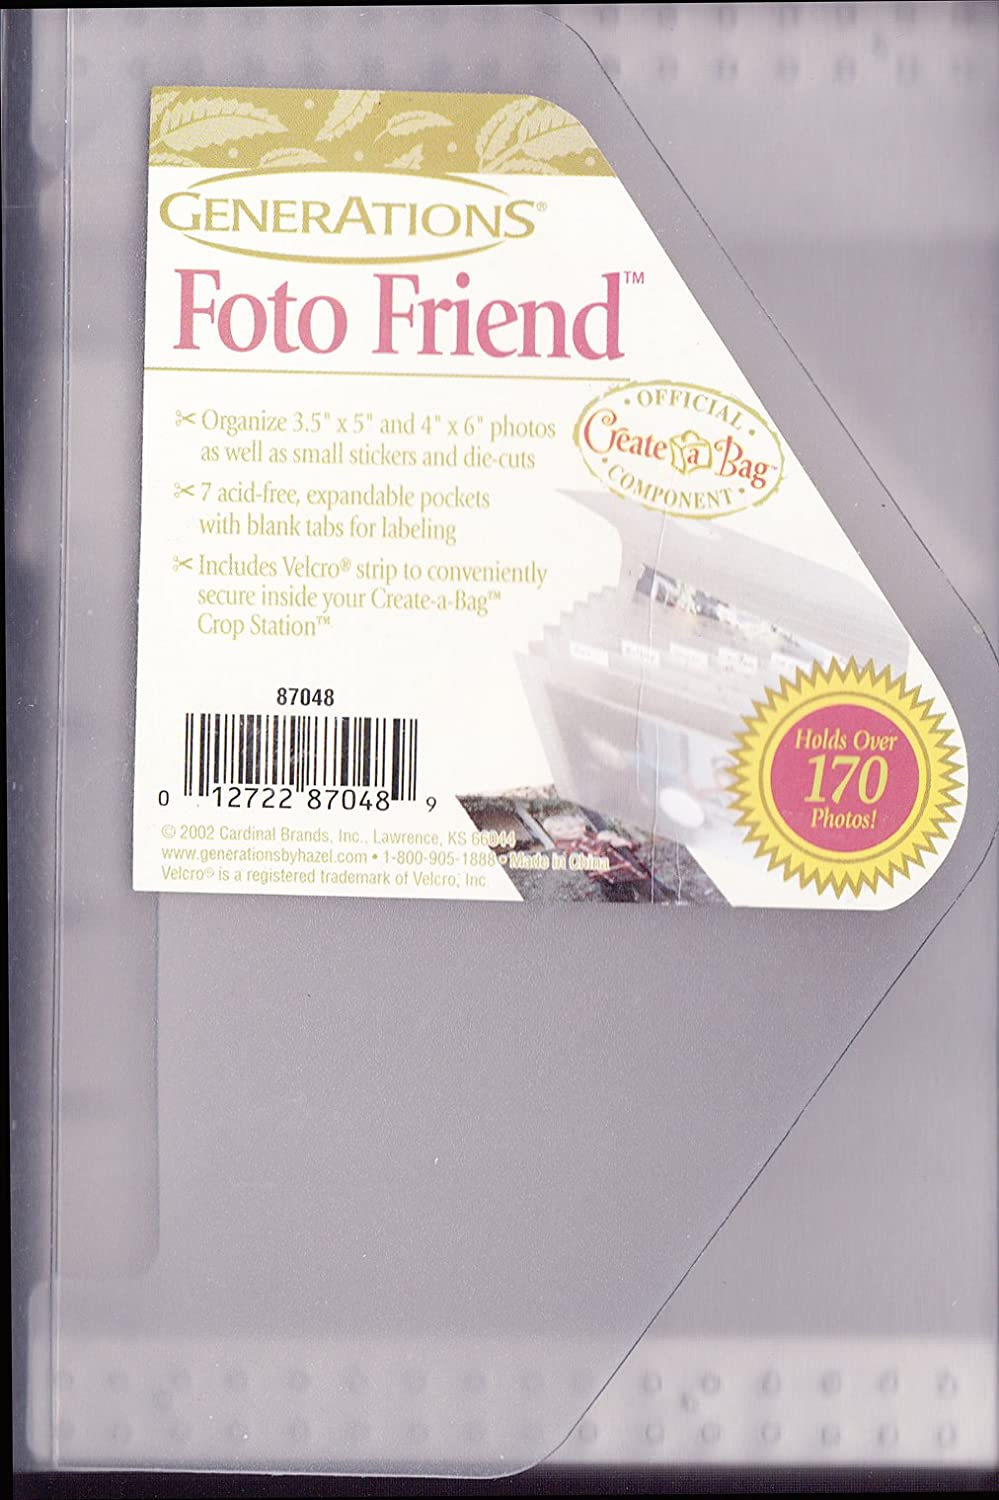 Photos Generations Foto Friend Create-A-Bag Component 87048 Holds 170